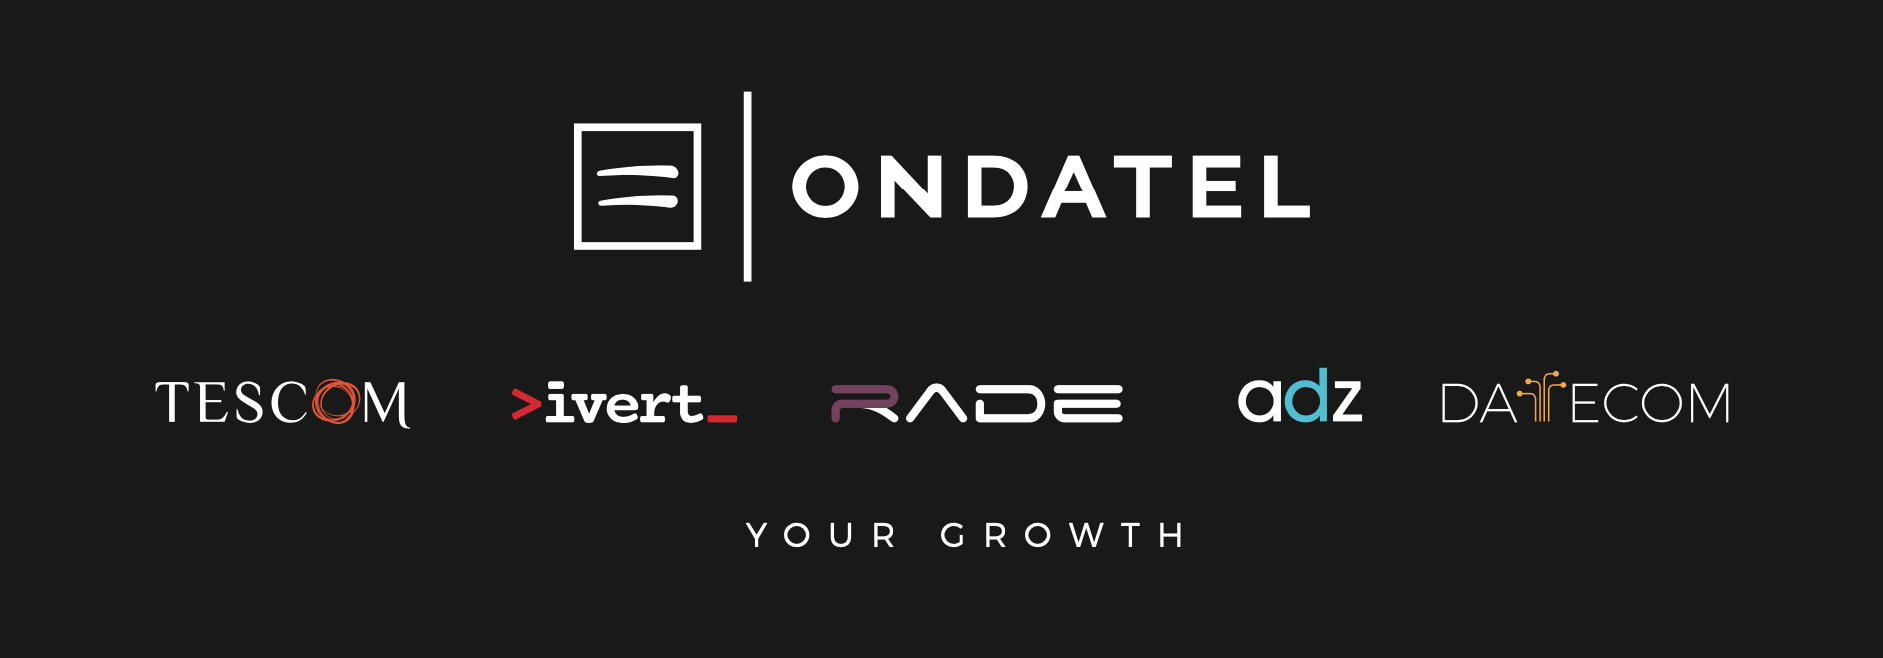 Ondatel Your Growth